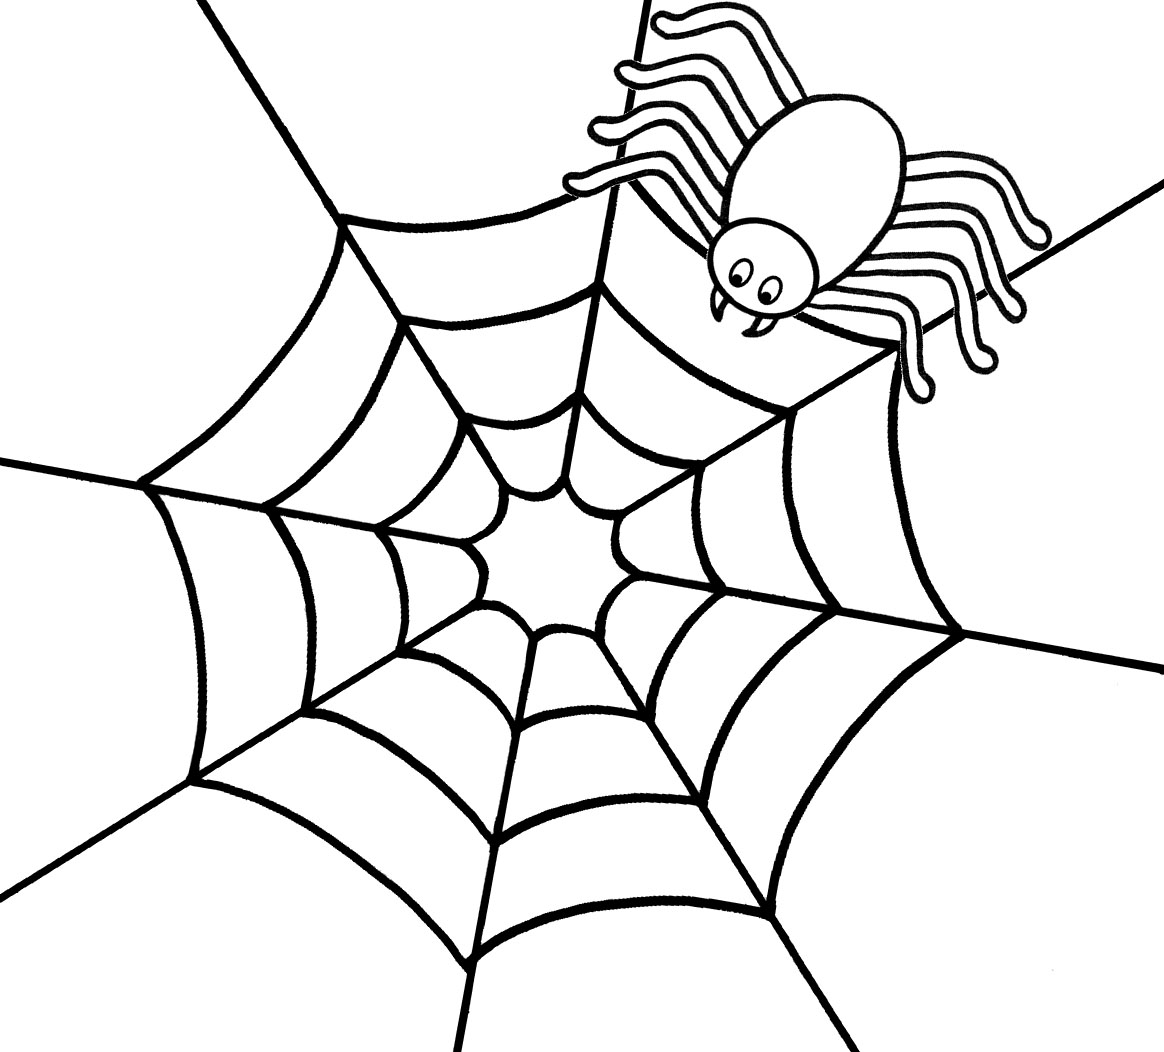 Spider Printable Coloring Pages Coloring Page Spider